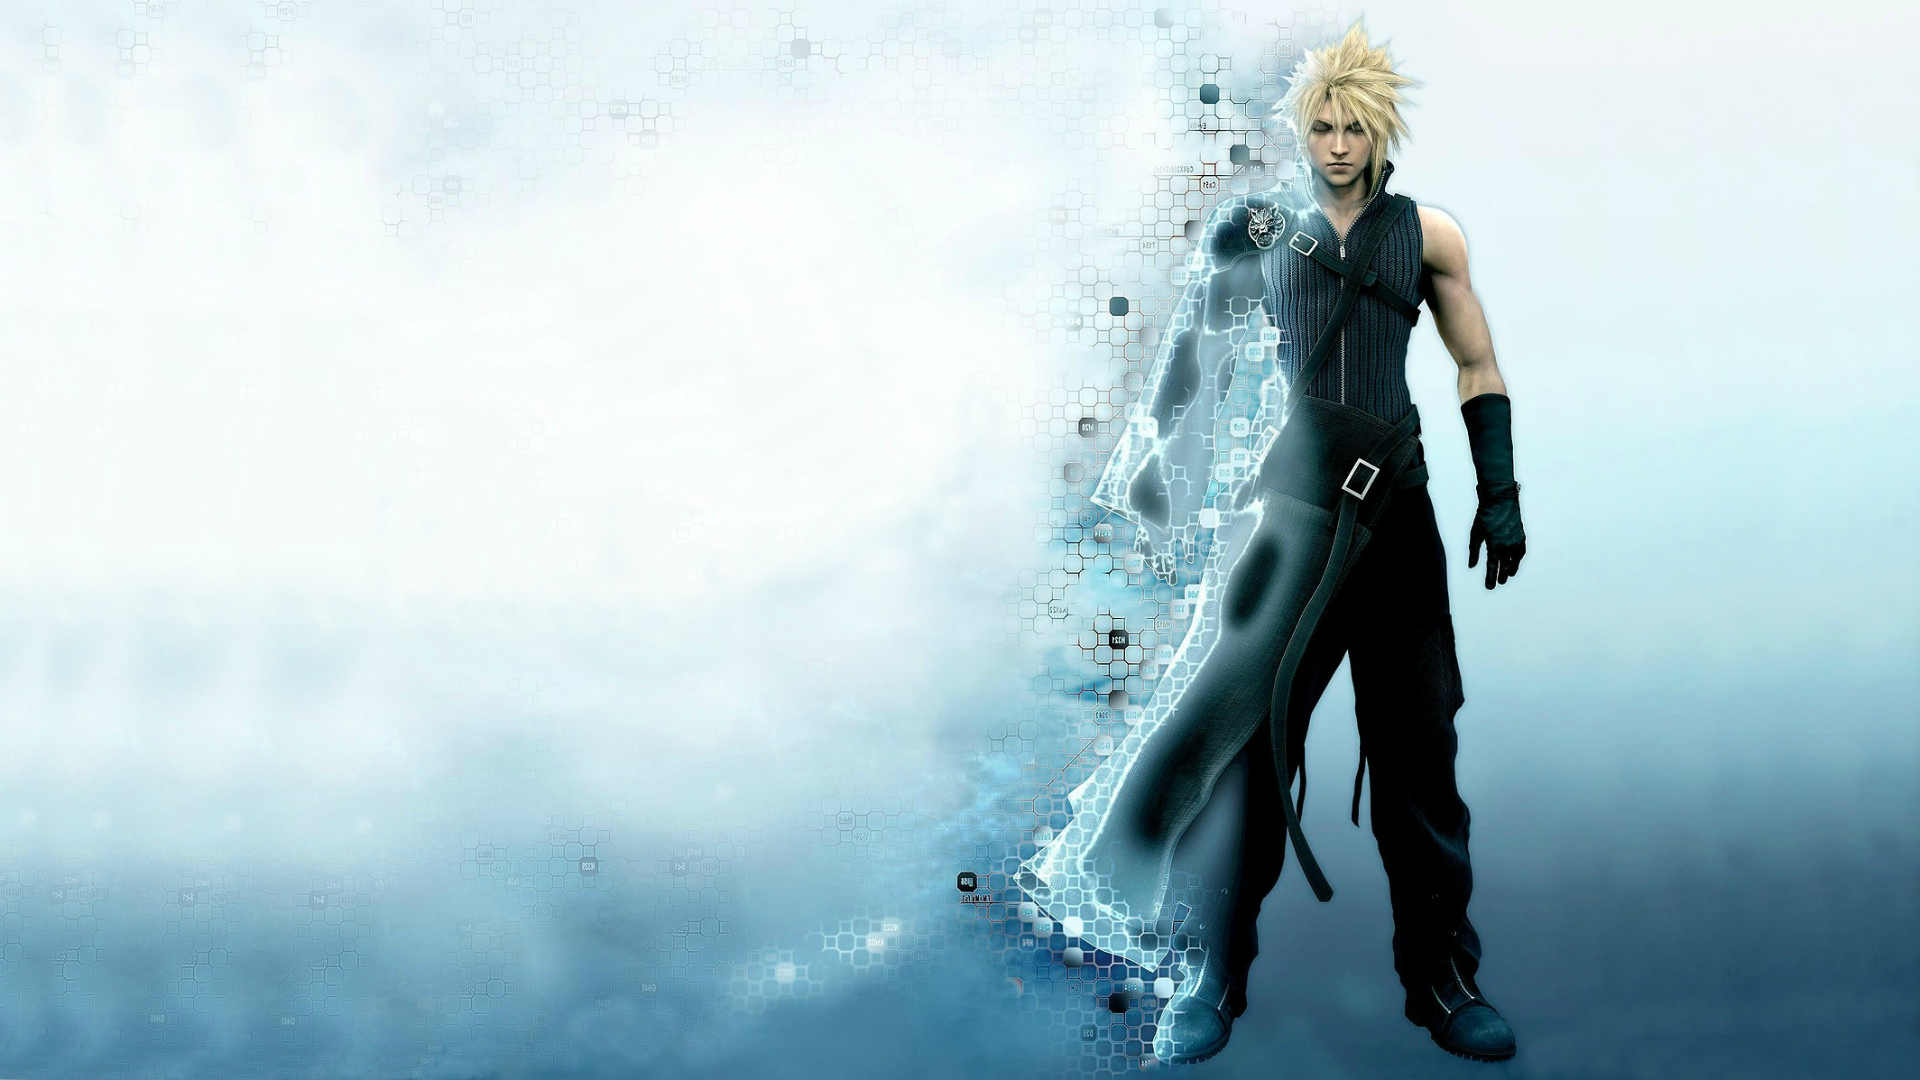 Final Fantasy Wallpaper Free #232132